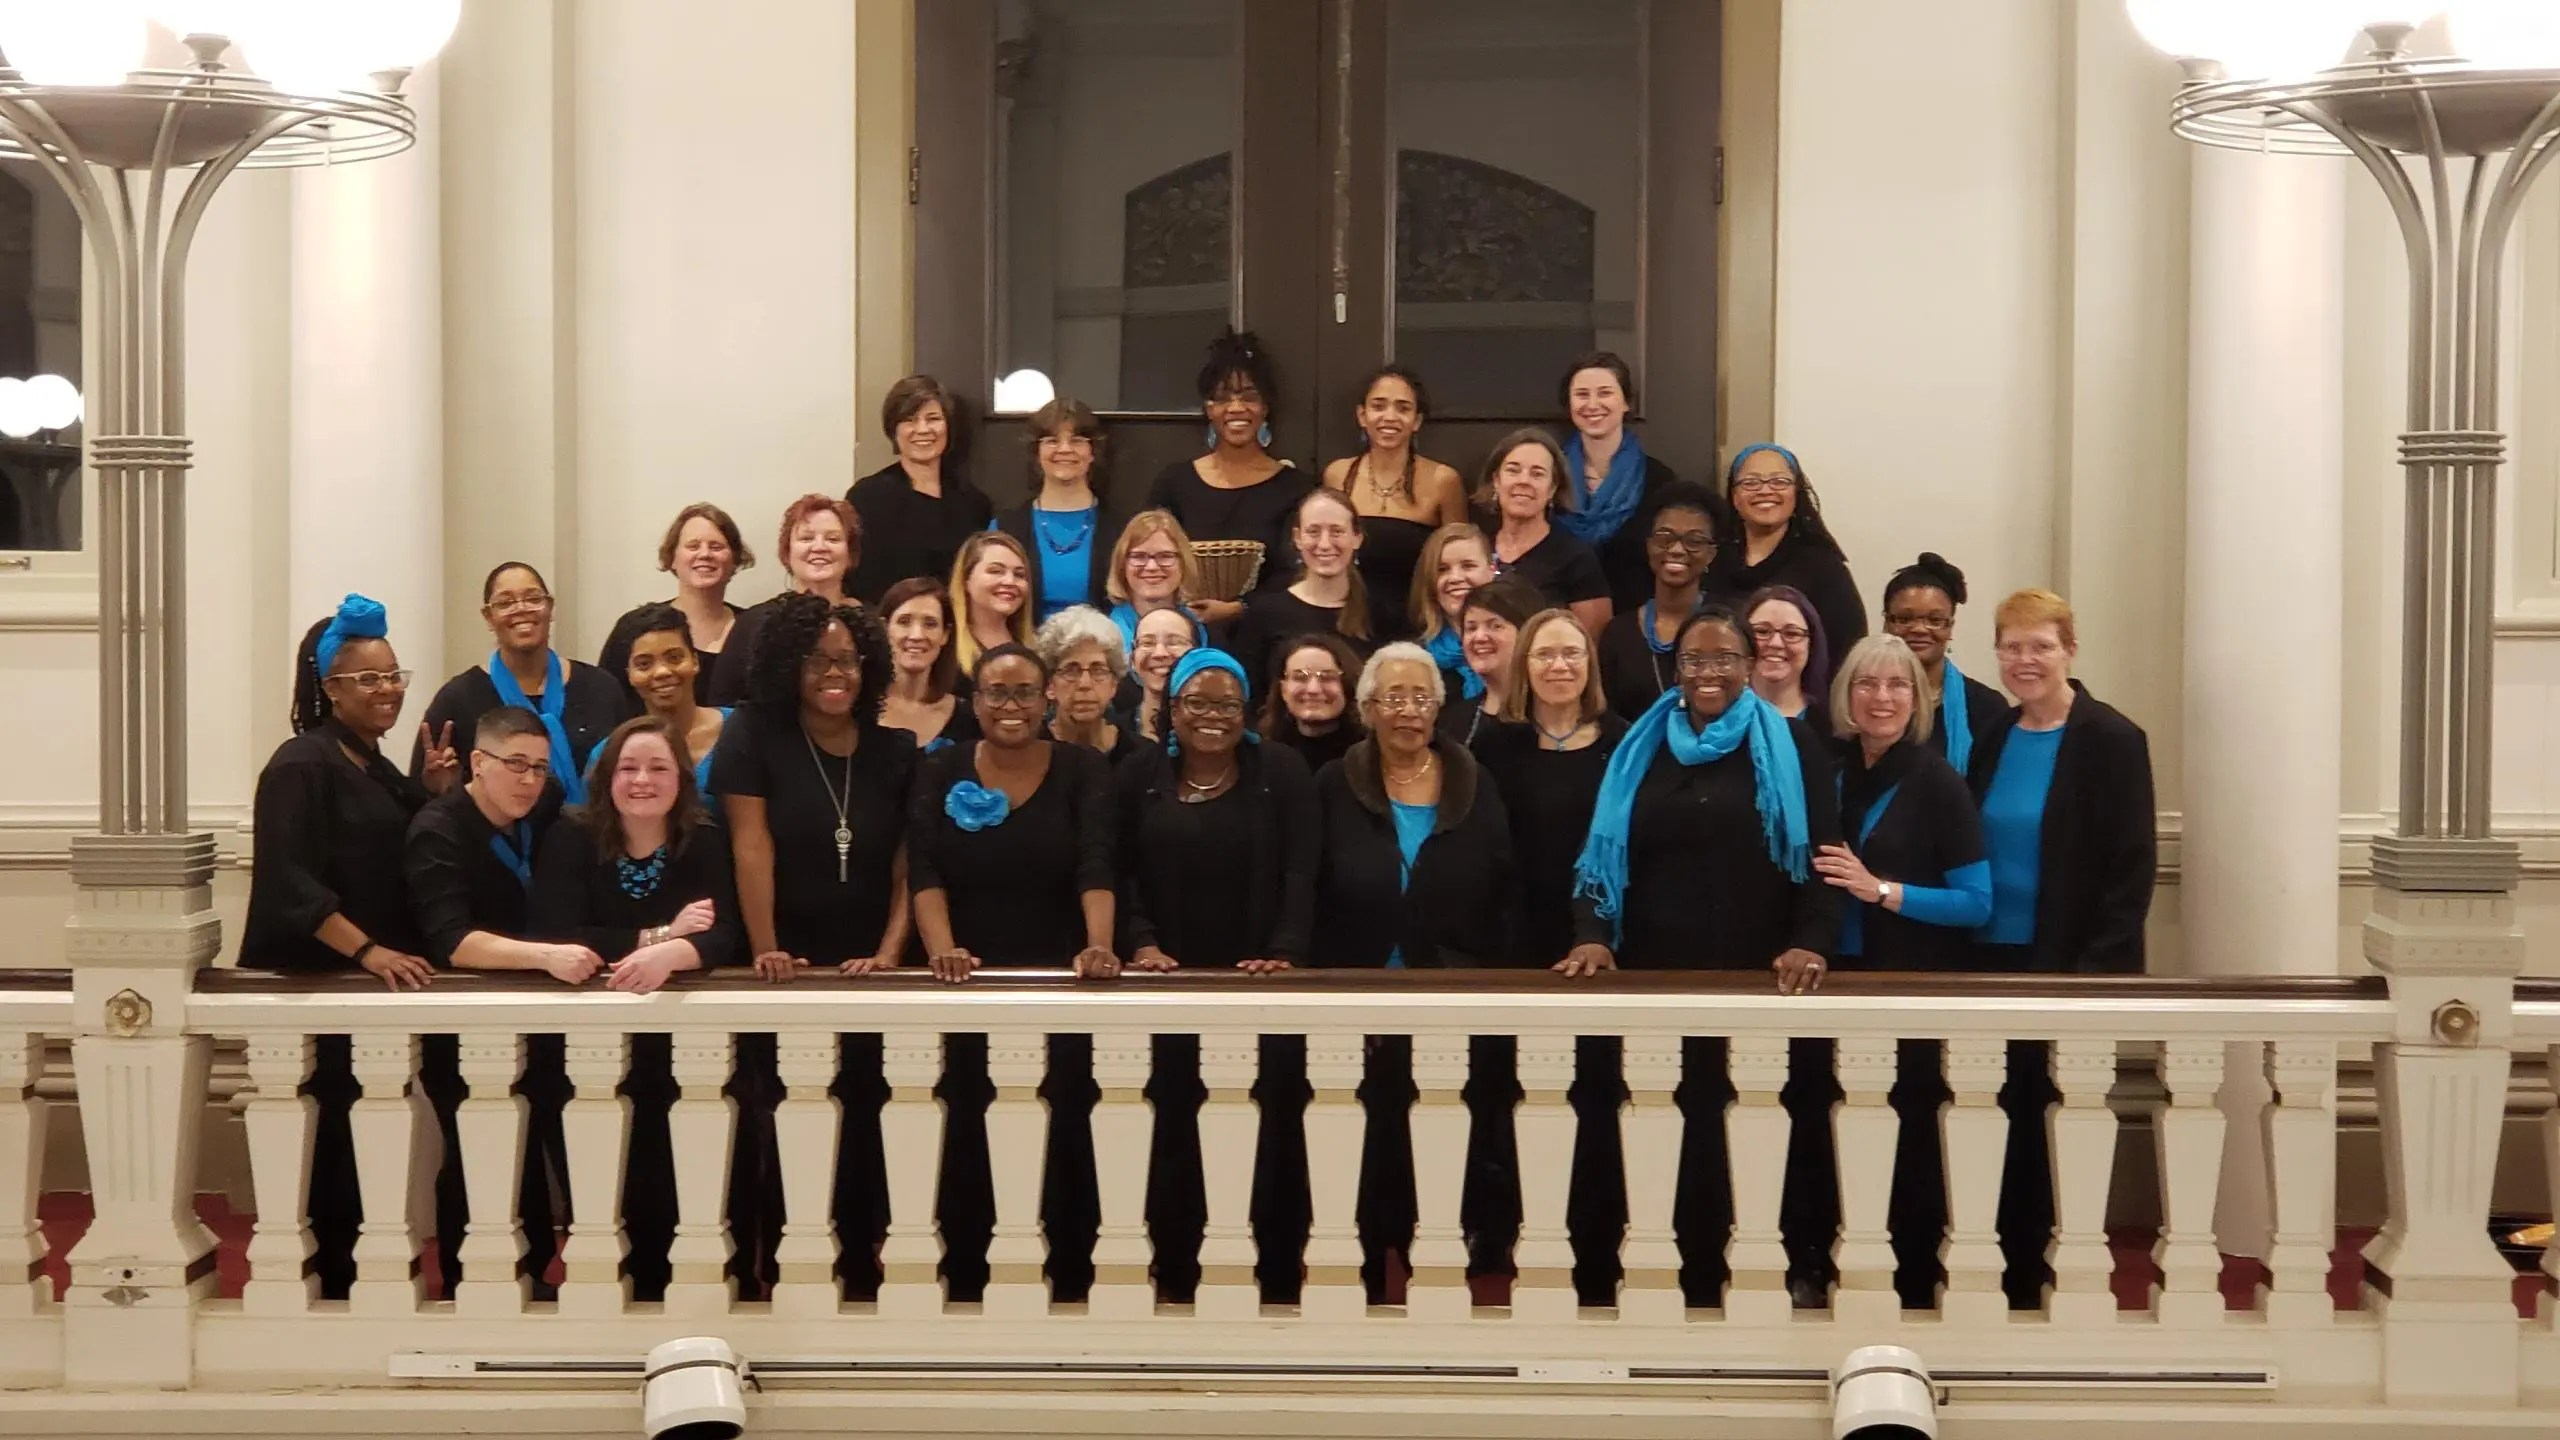 Cincinnati's Women's Choir